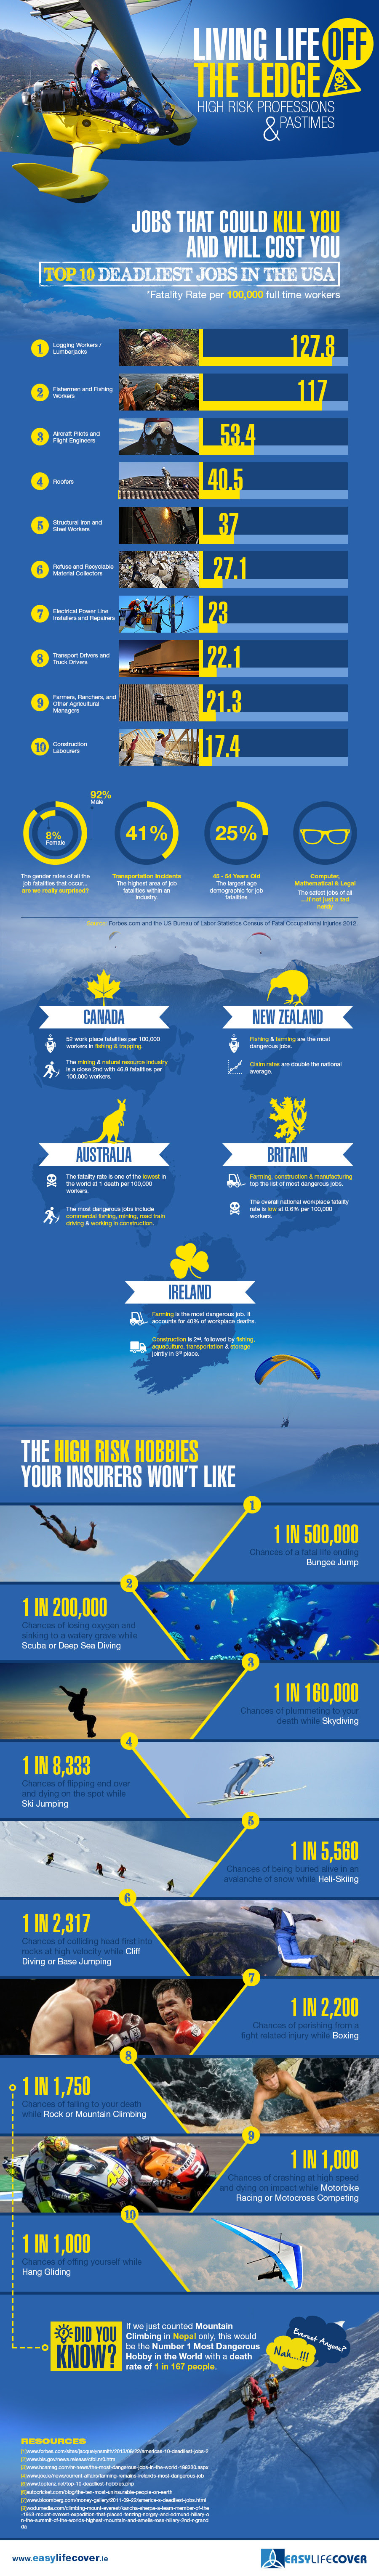 Infographic: Living Life Off the Ledge, High Risk Professions and Pastimes #infographic